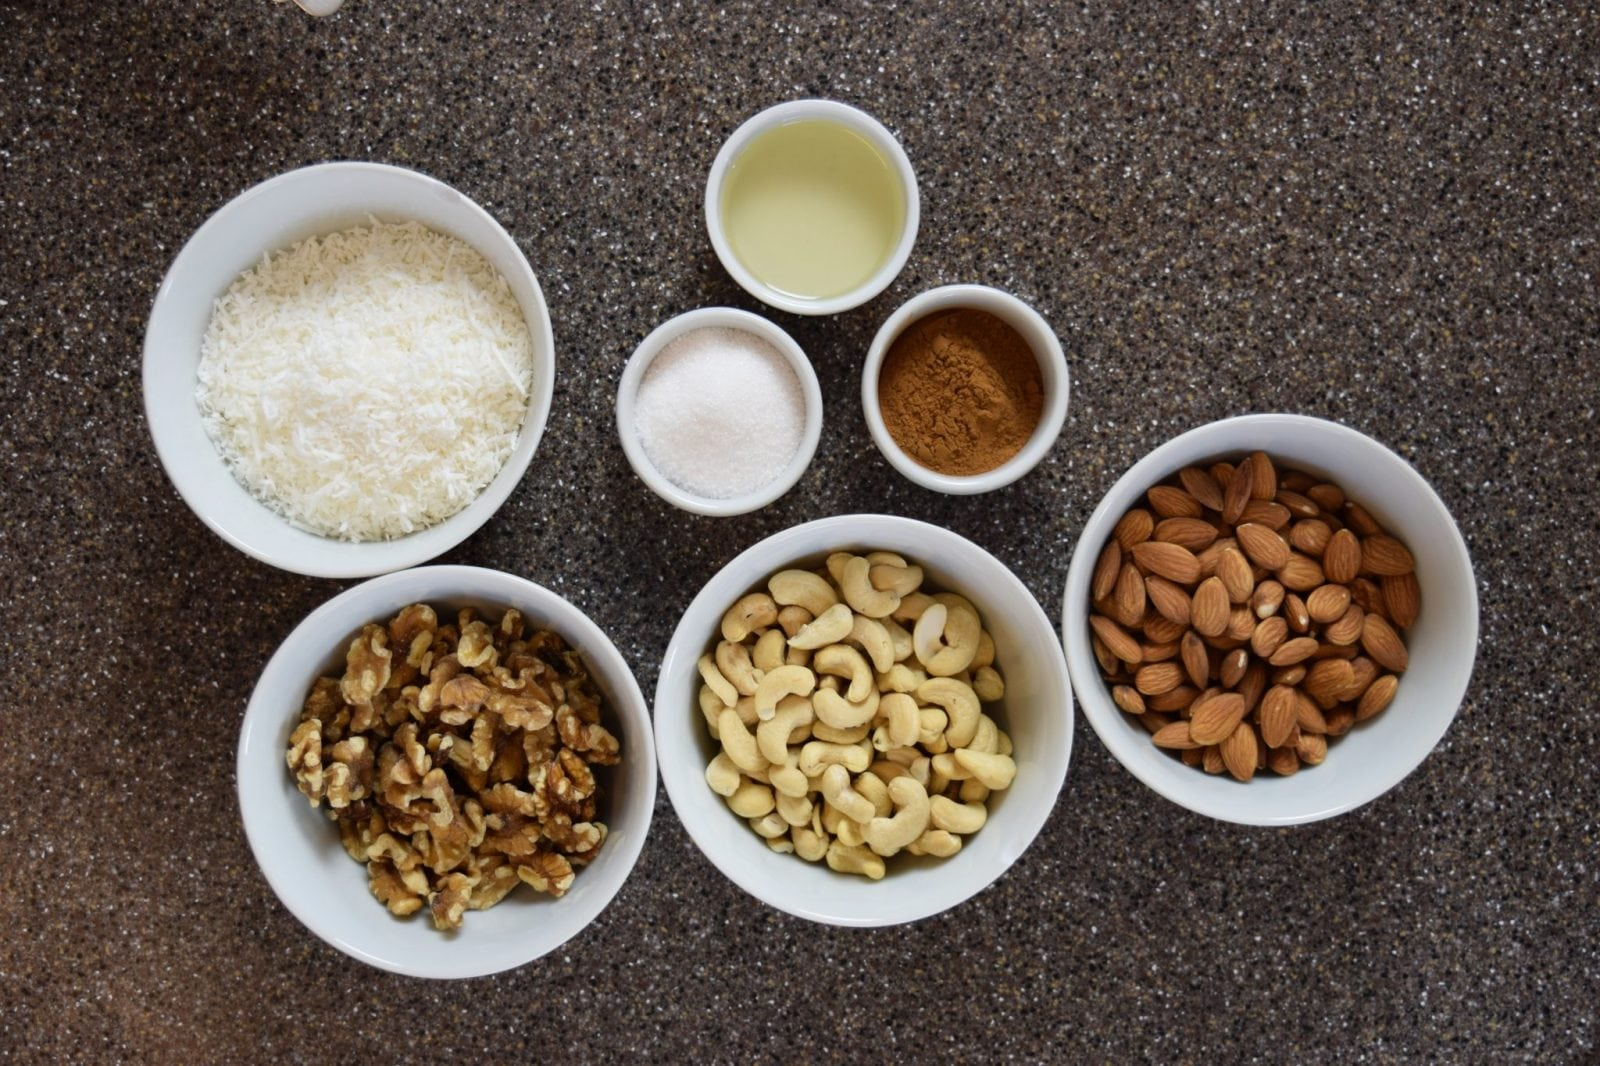 white bowls of shredded coconut, 3 wie bowls of nuts, 3 small bowls of spices all on a gray counter